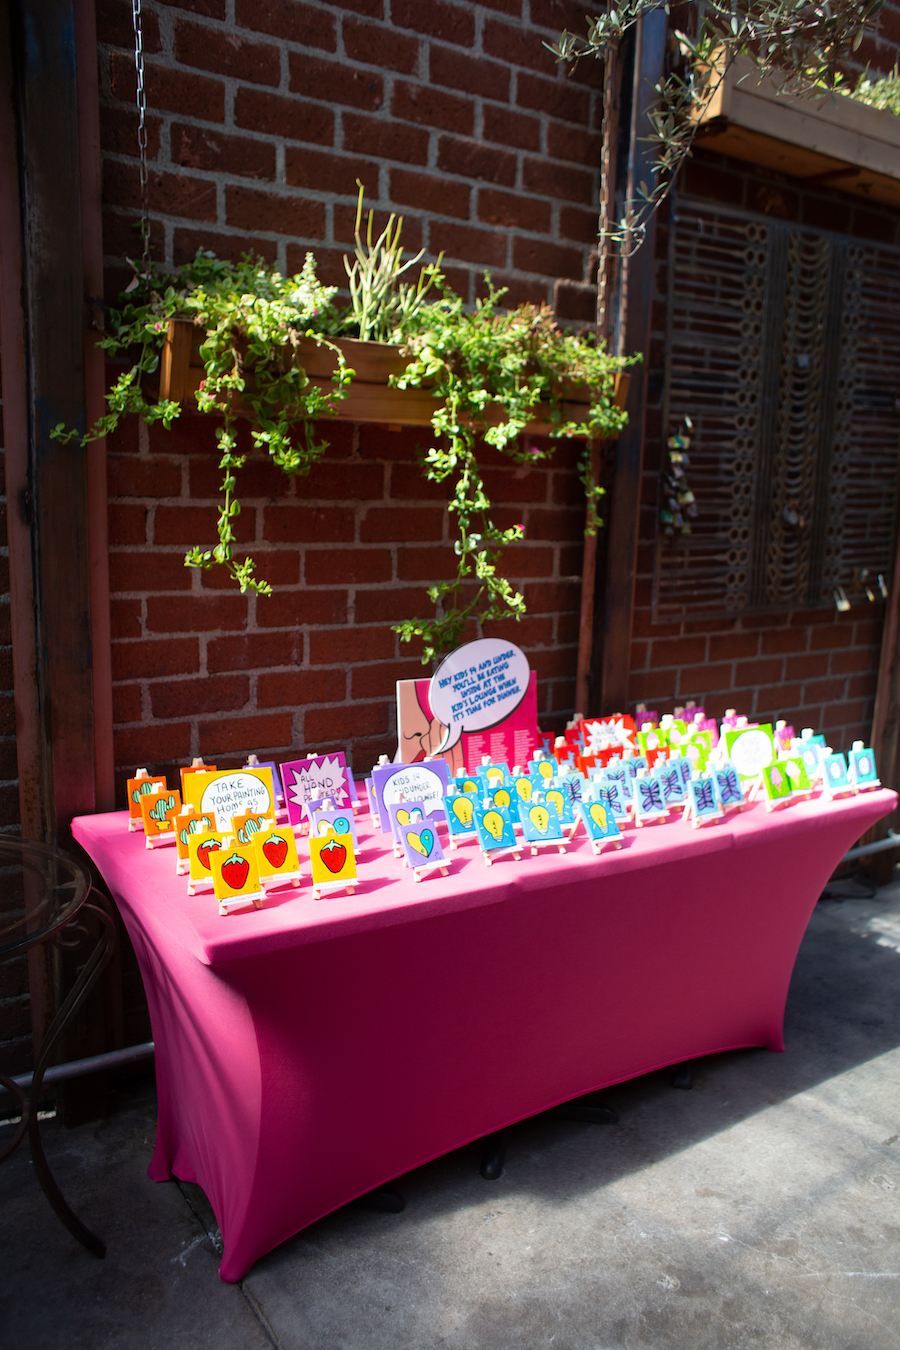 gifting table with hand-painted artwork at bat mitzvah